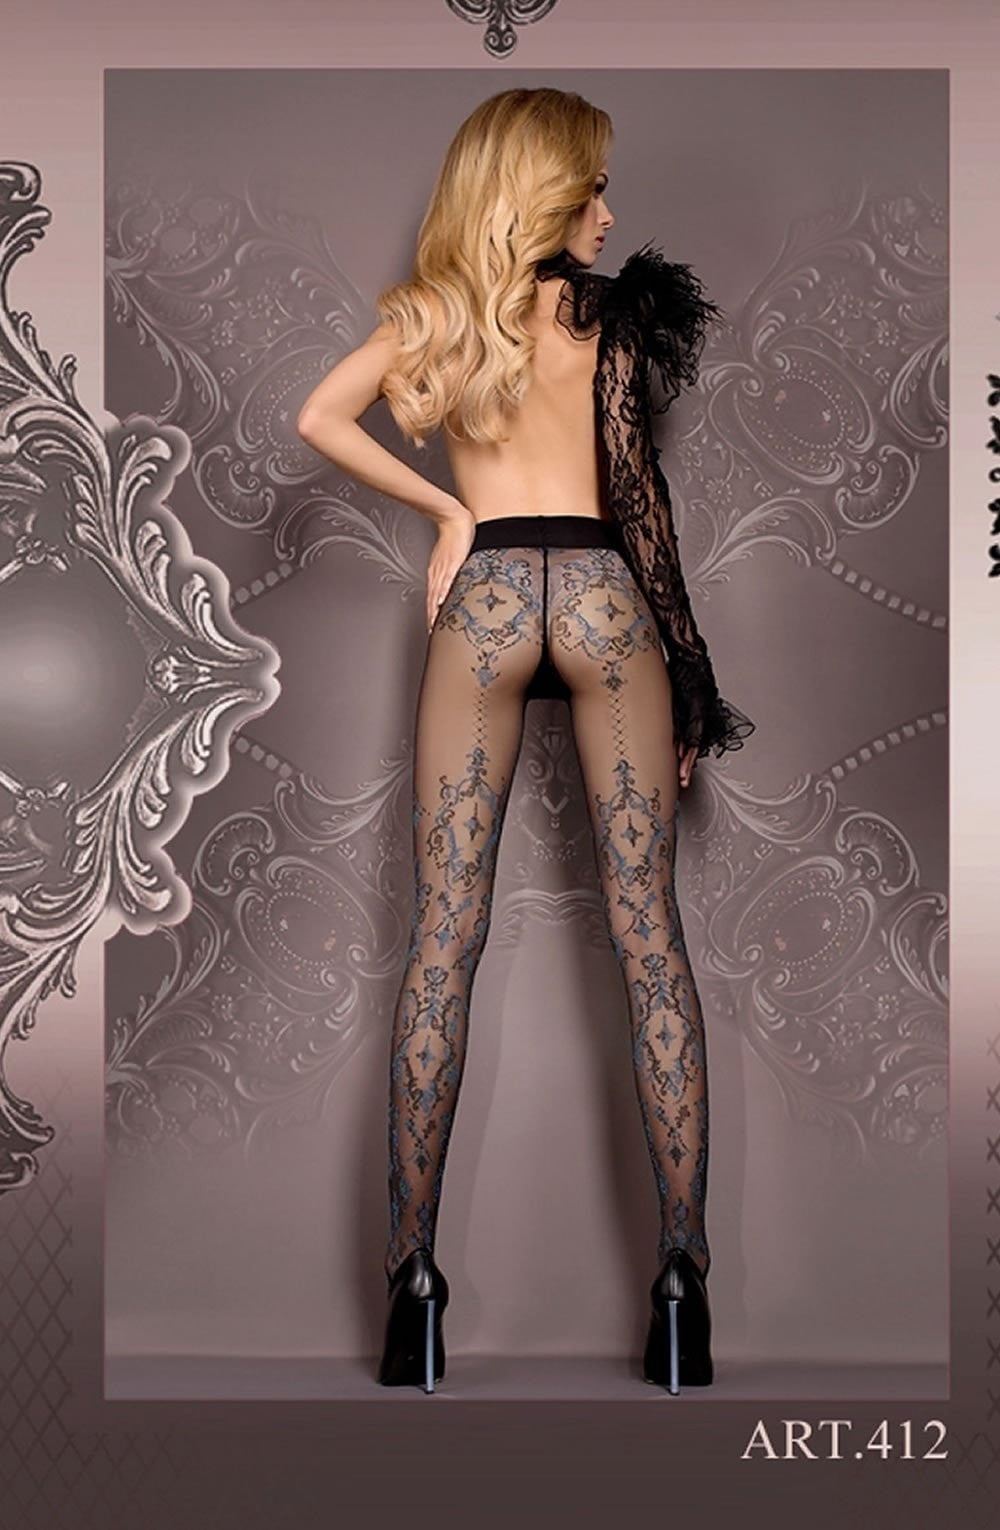 Ballerina Tights 412 - Tights - Ballerina - Charm and Lace Boutique